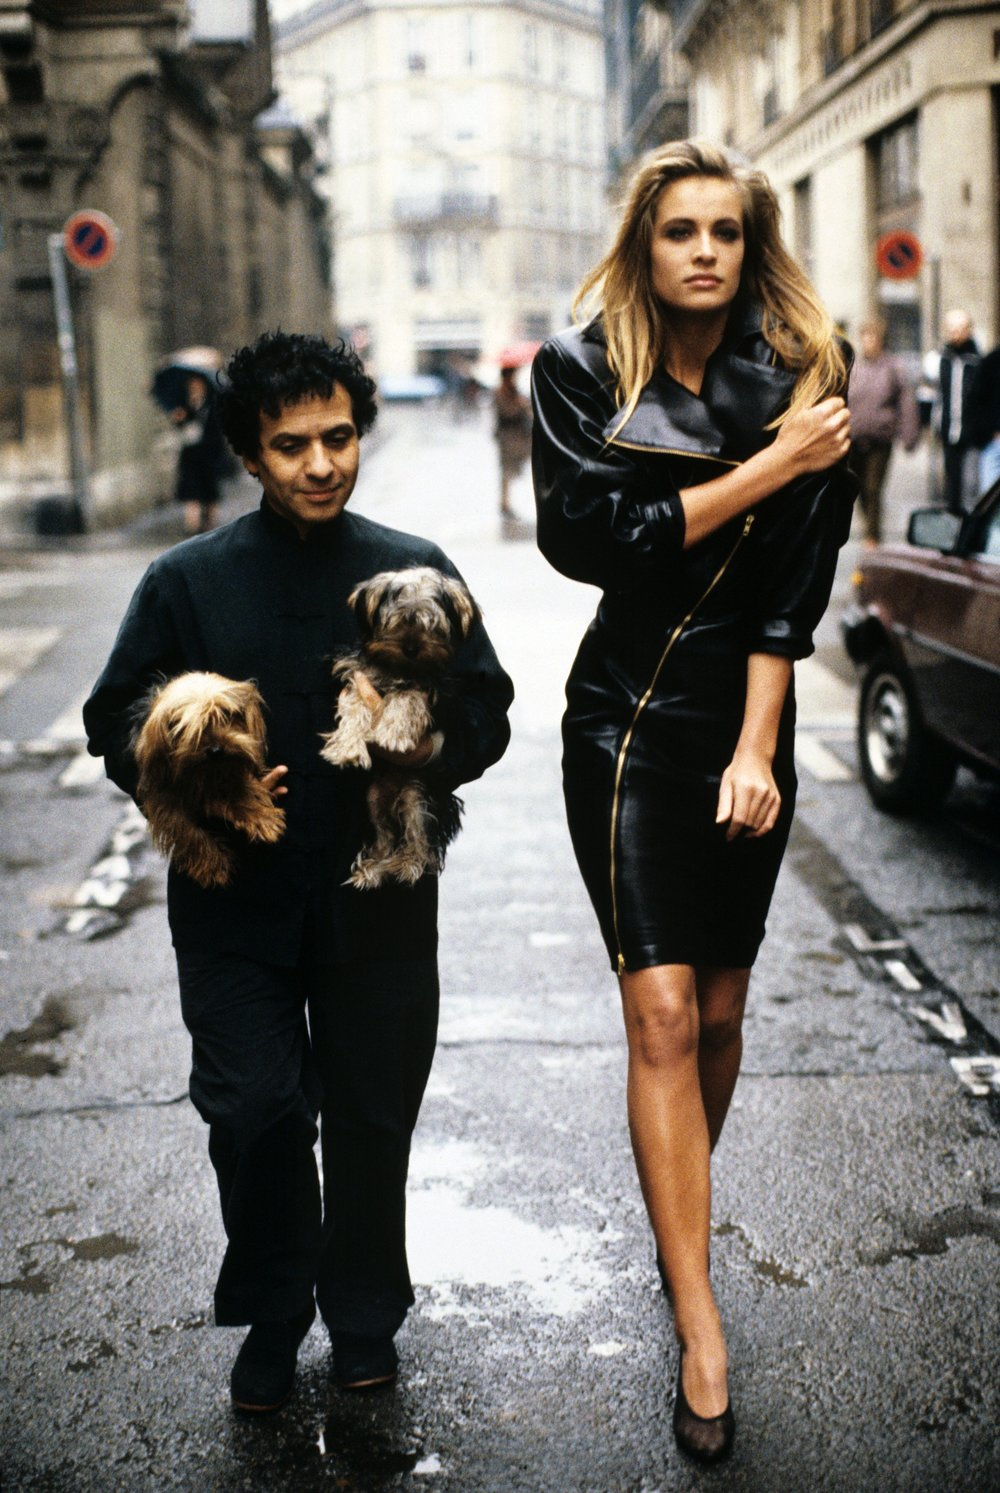 Fashion designer Azzedine Alaïa holding his two Yorkshire terriers, Patapouf and Wabo, walking in Paris street with model Frederique who wears one of his creations, a black leather zippered dress, 1986. Photograph Courtesy of Arthur Elgort.